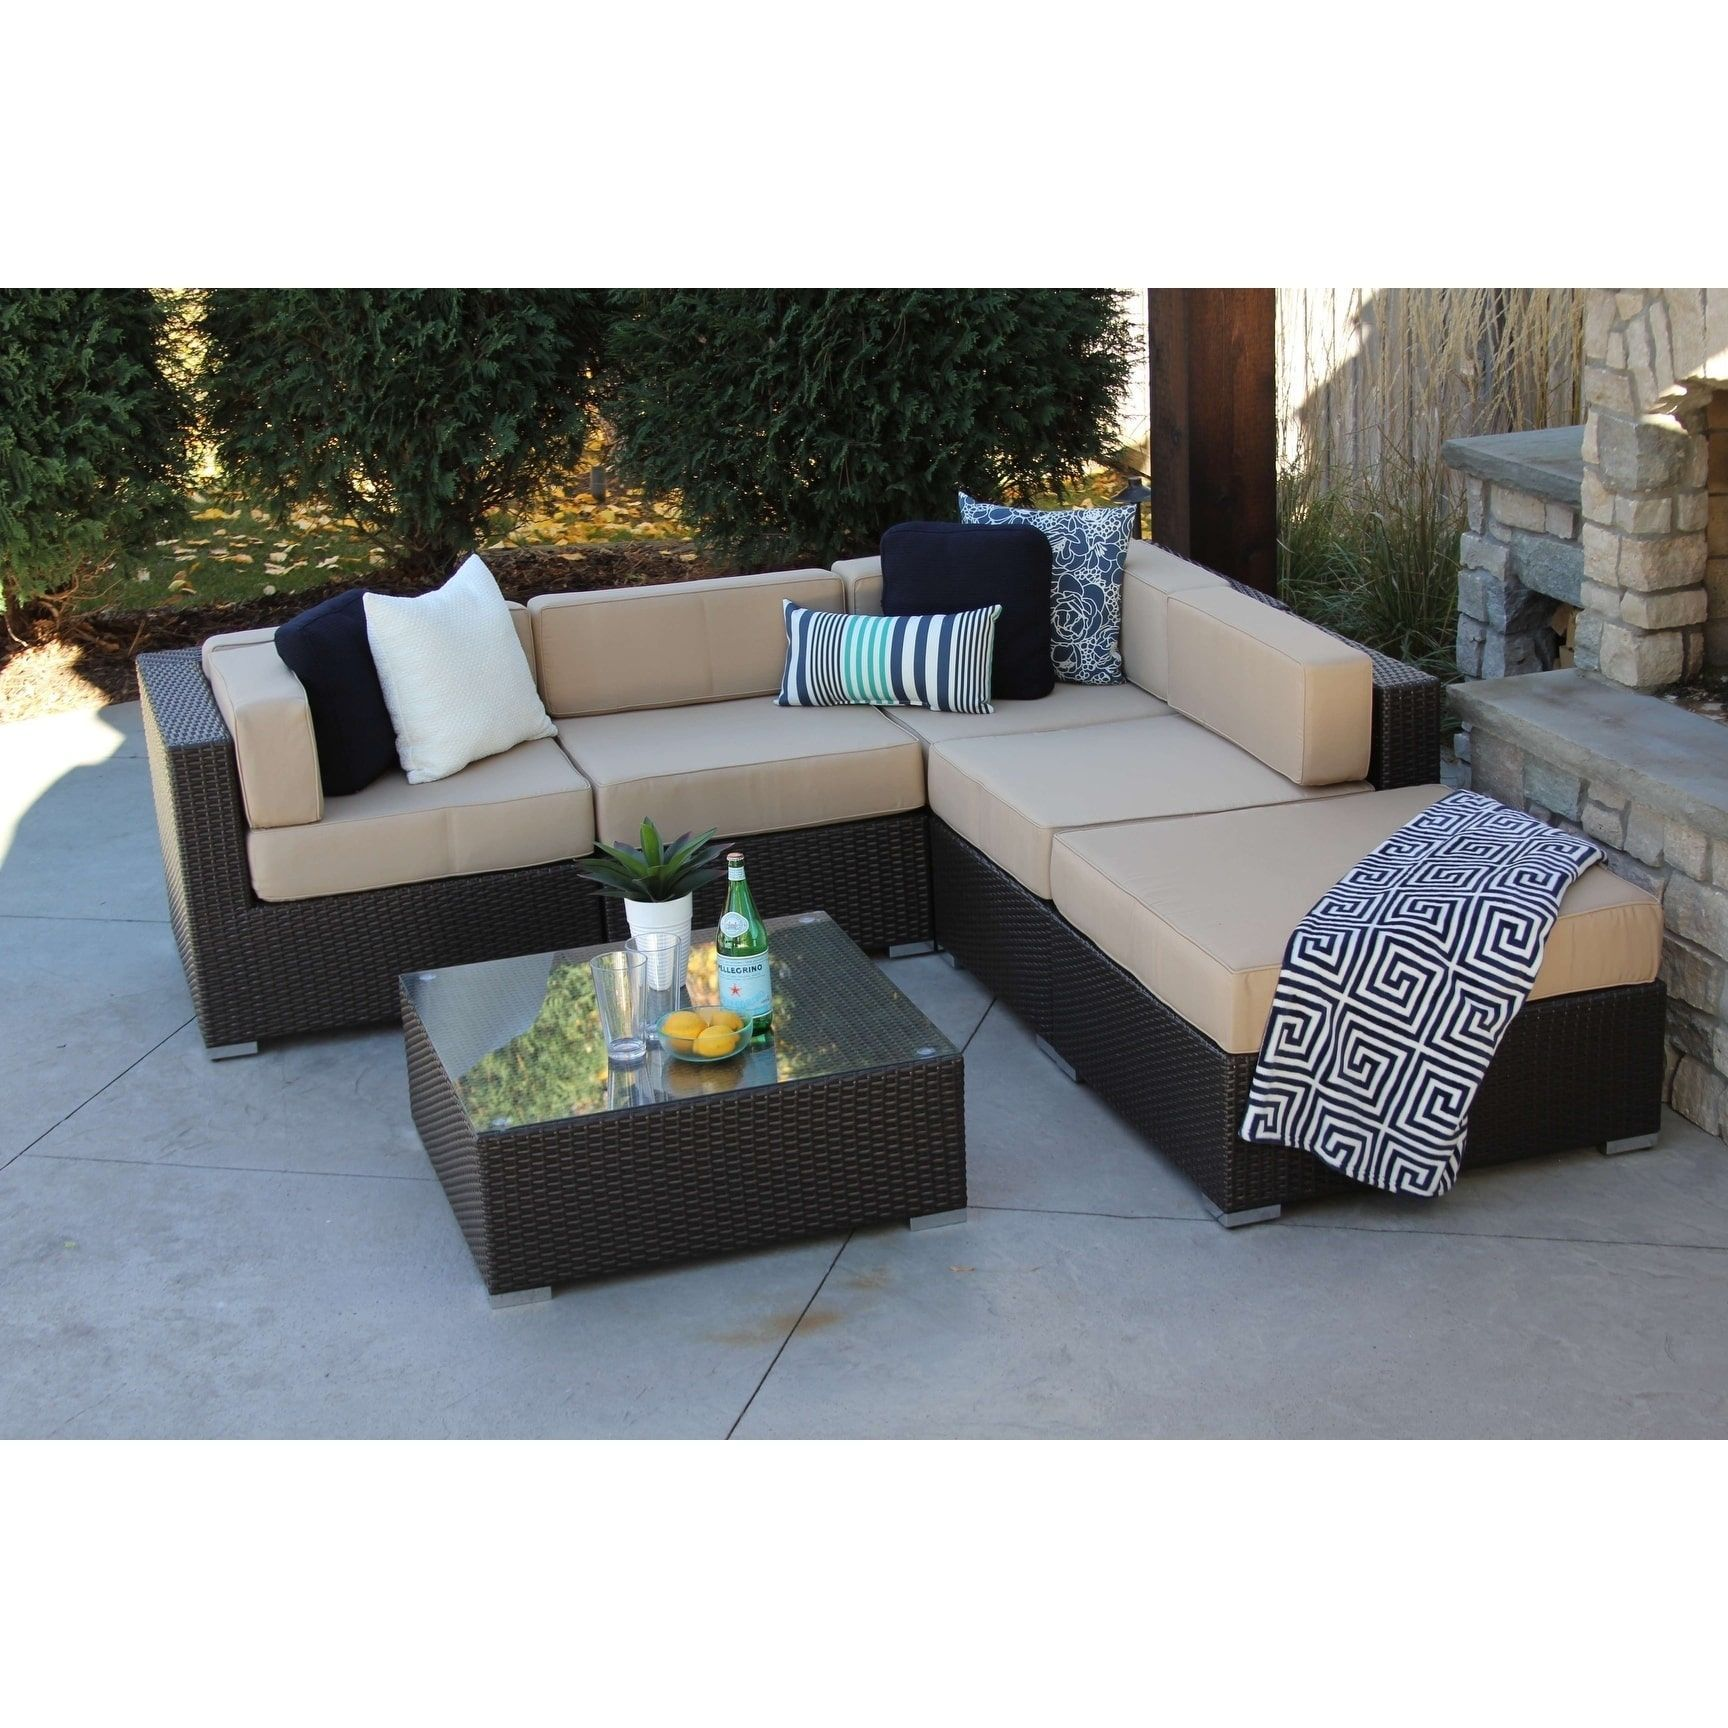 95fc9cbeda71089dcf7f2f9c63a8838c Top Result 52 Lovely Sectional Patio Furniture Clearance Photography 2017 Pkt6